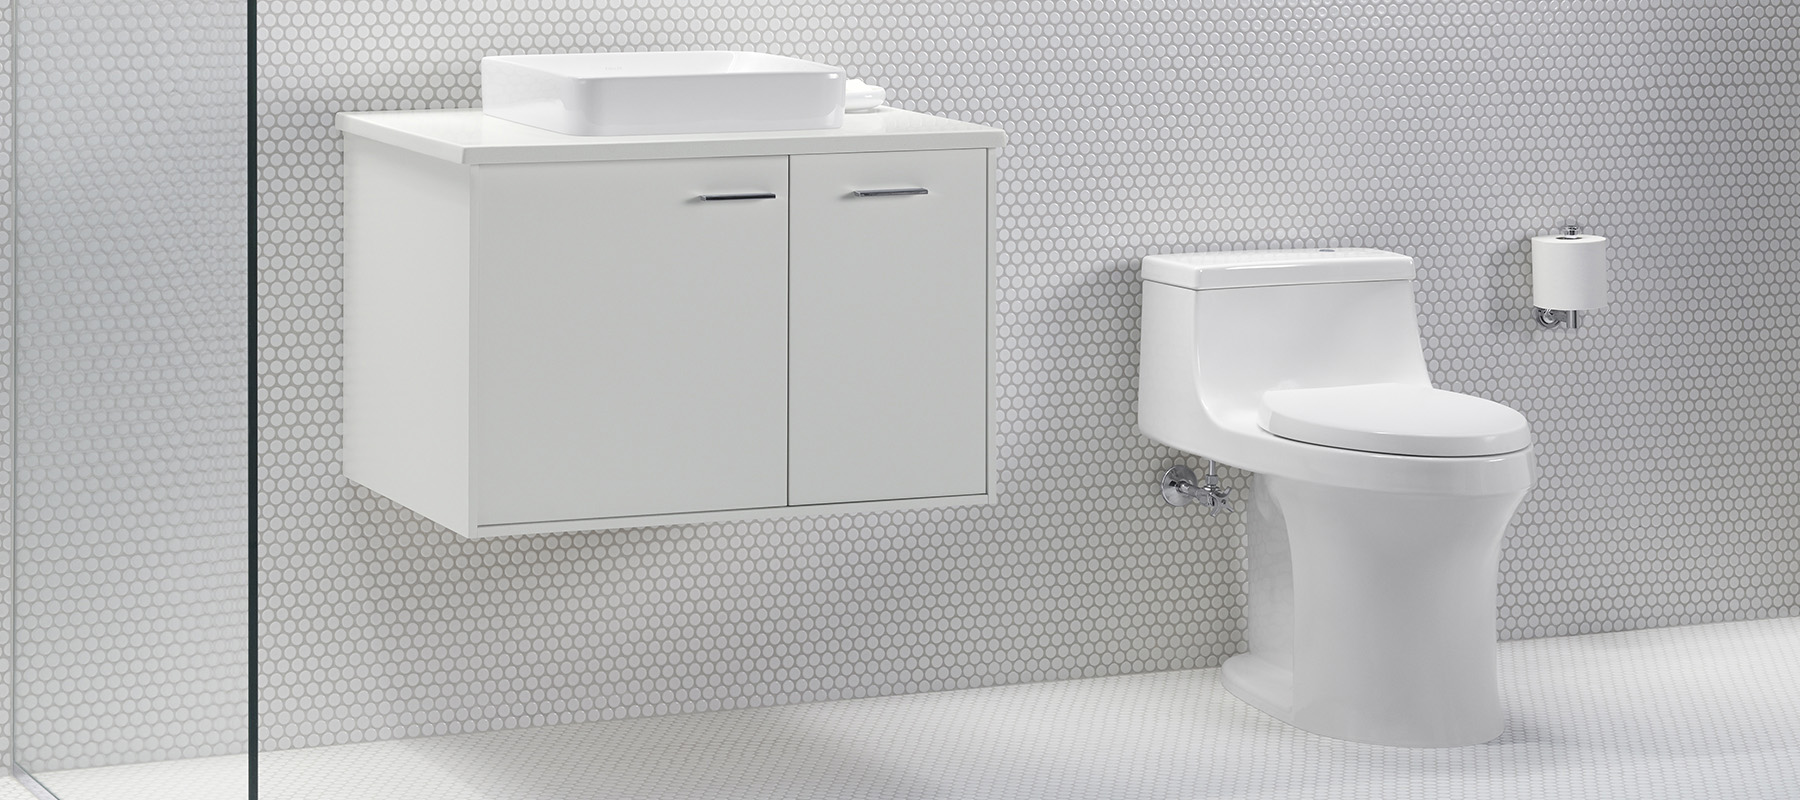 Kohler Water Closet - Home Design Ideas and Pictures